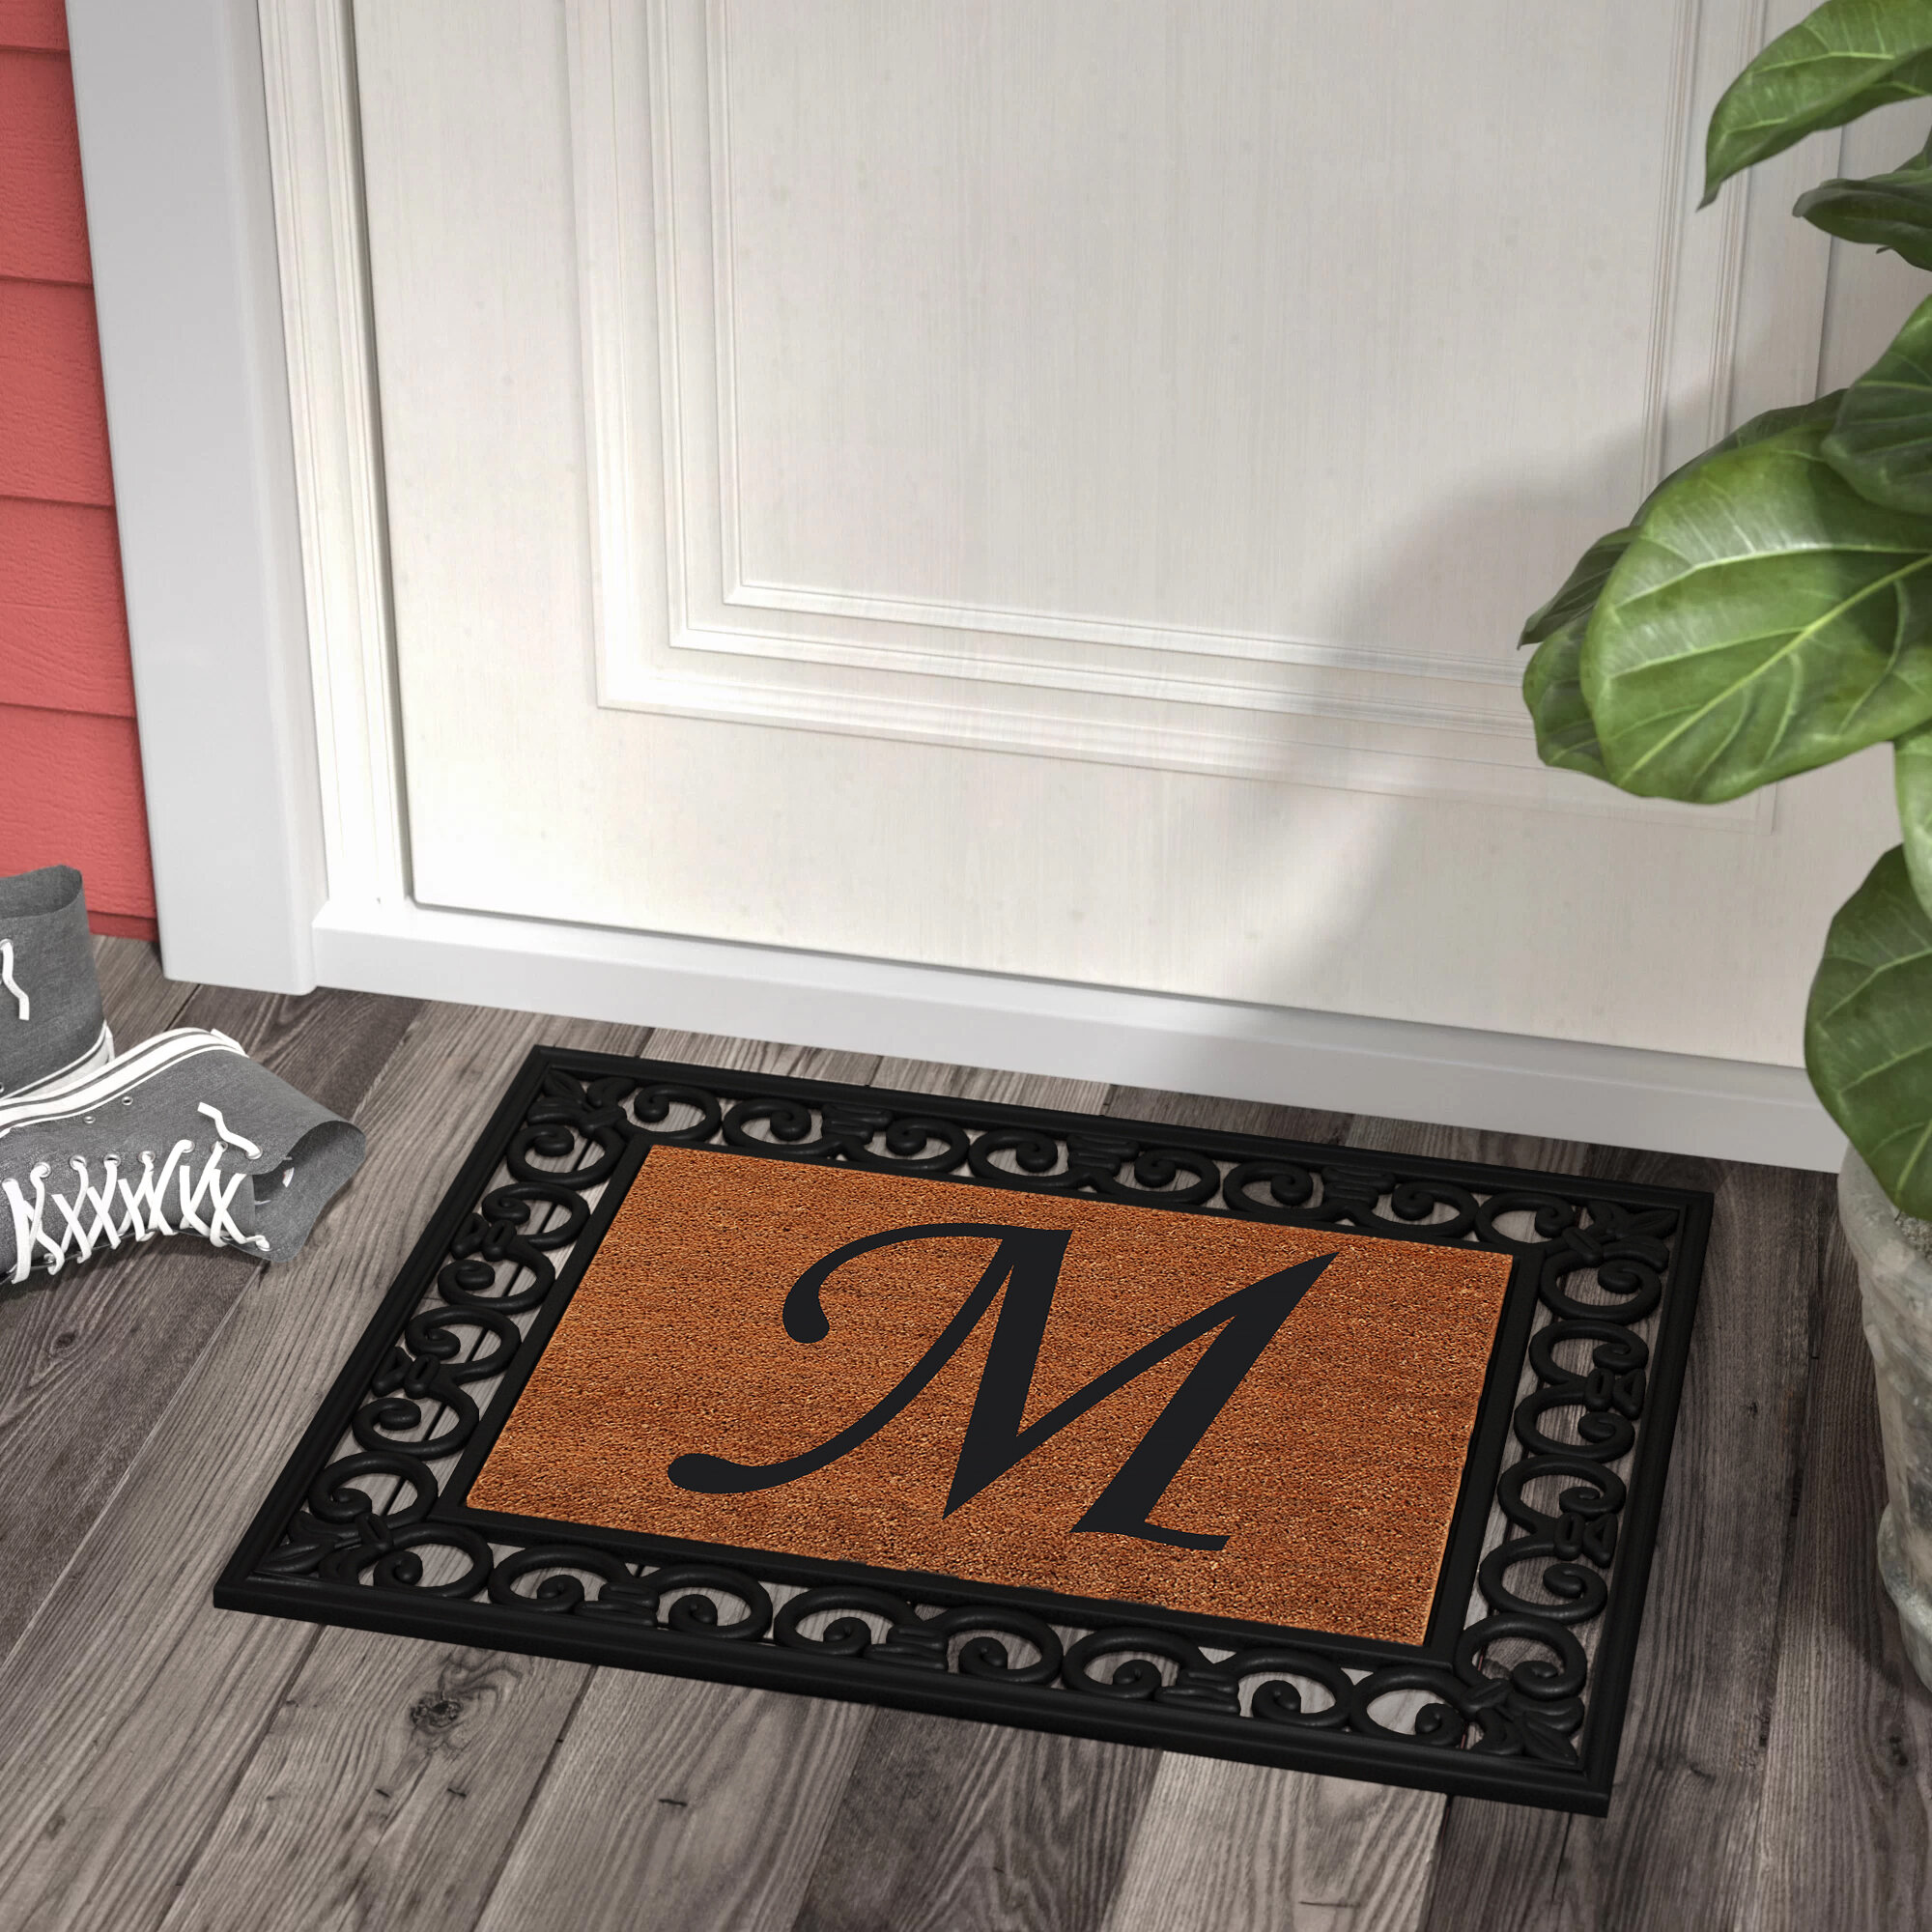 High Quality Postal Stamp Rubber Moulded Doormat With Inserted Welcome Coir Mat.